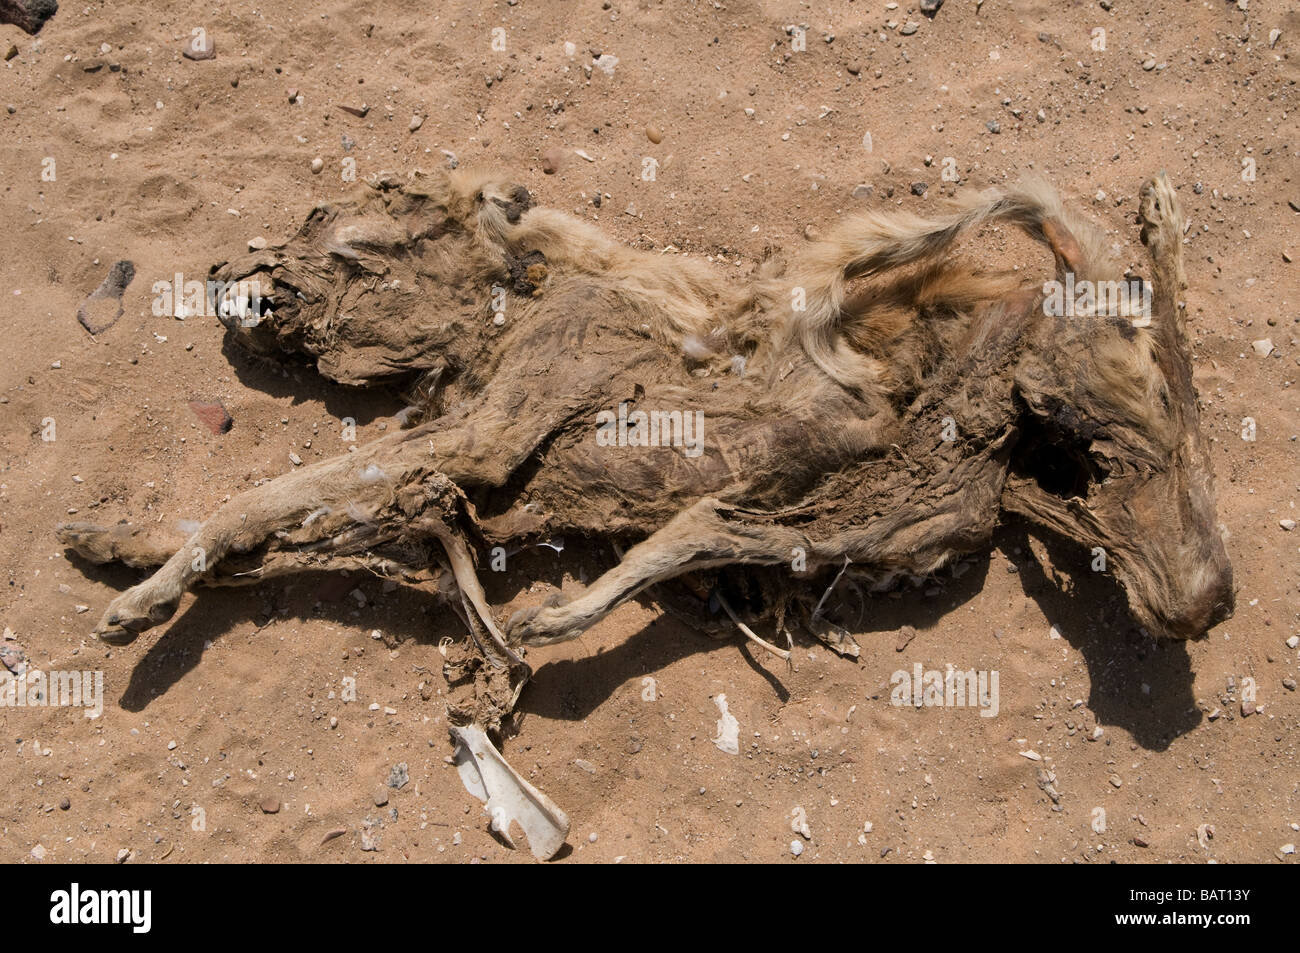 Remains of a dead dog in the desert Egypt - Stock Image